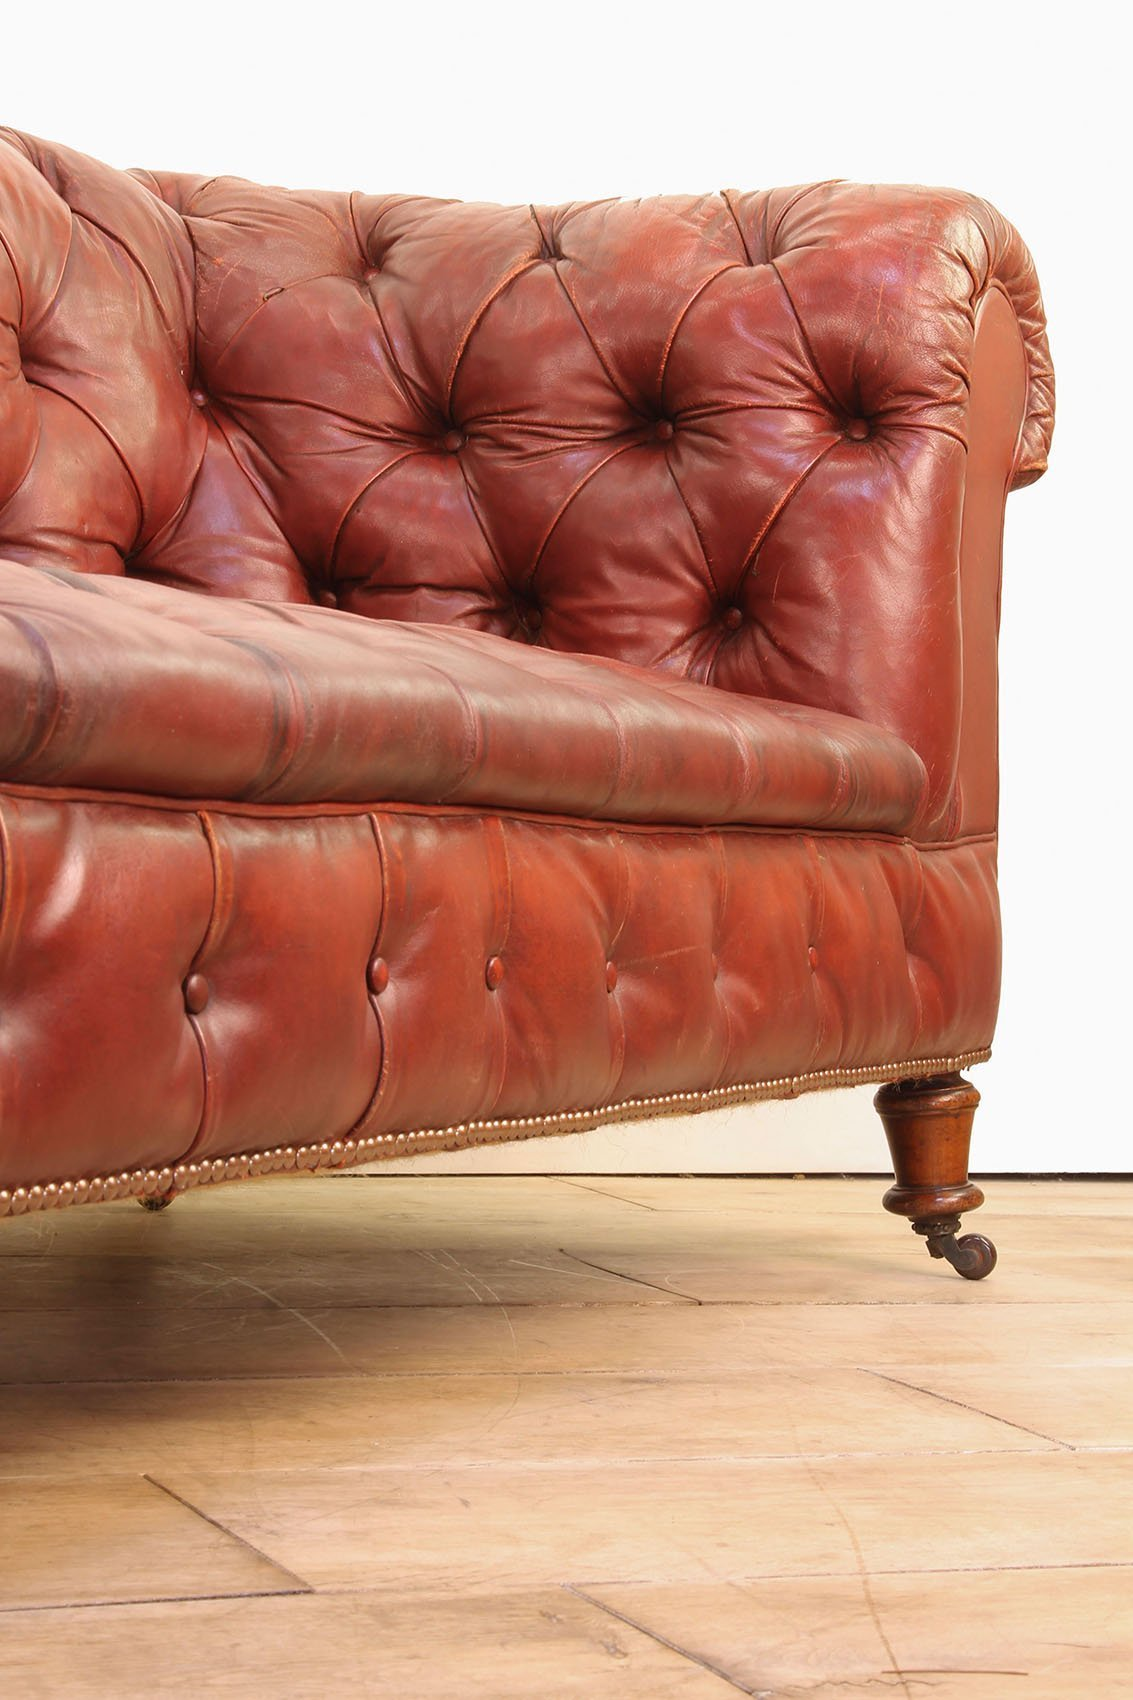 Victorian Red Leather Chesterfield Sofa Cooling Amp Cooling